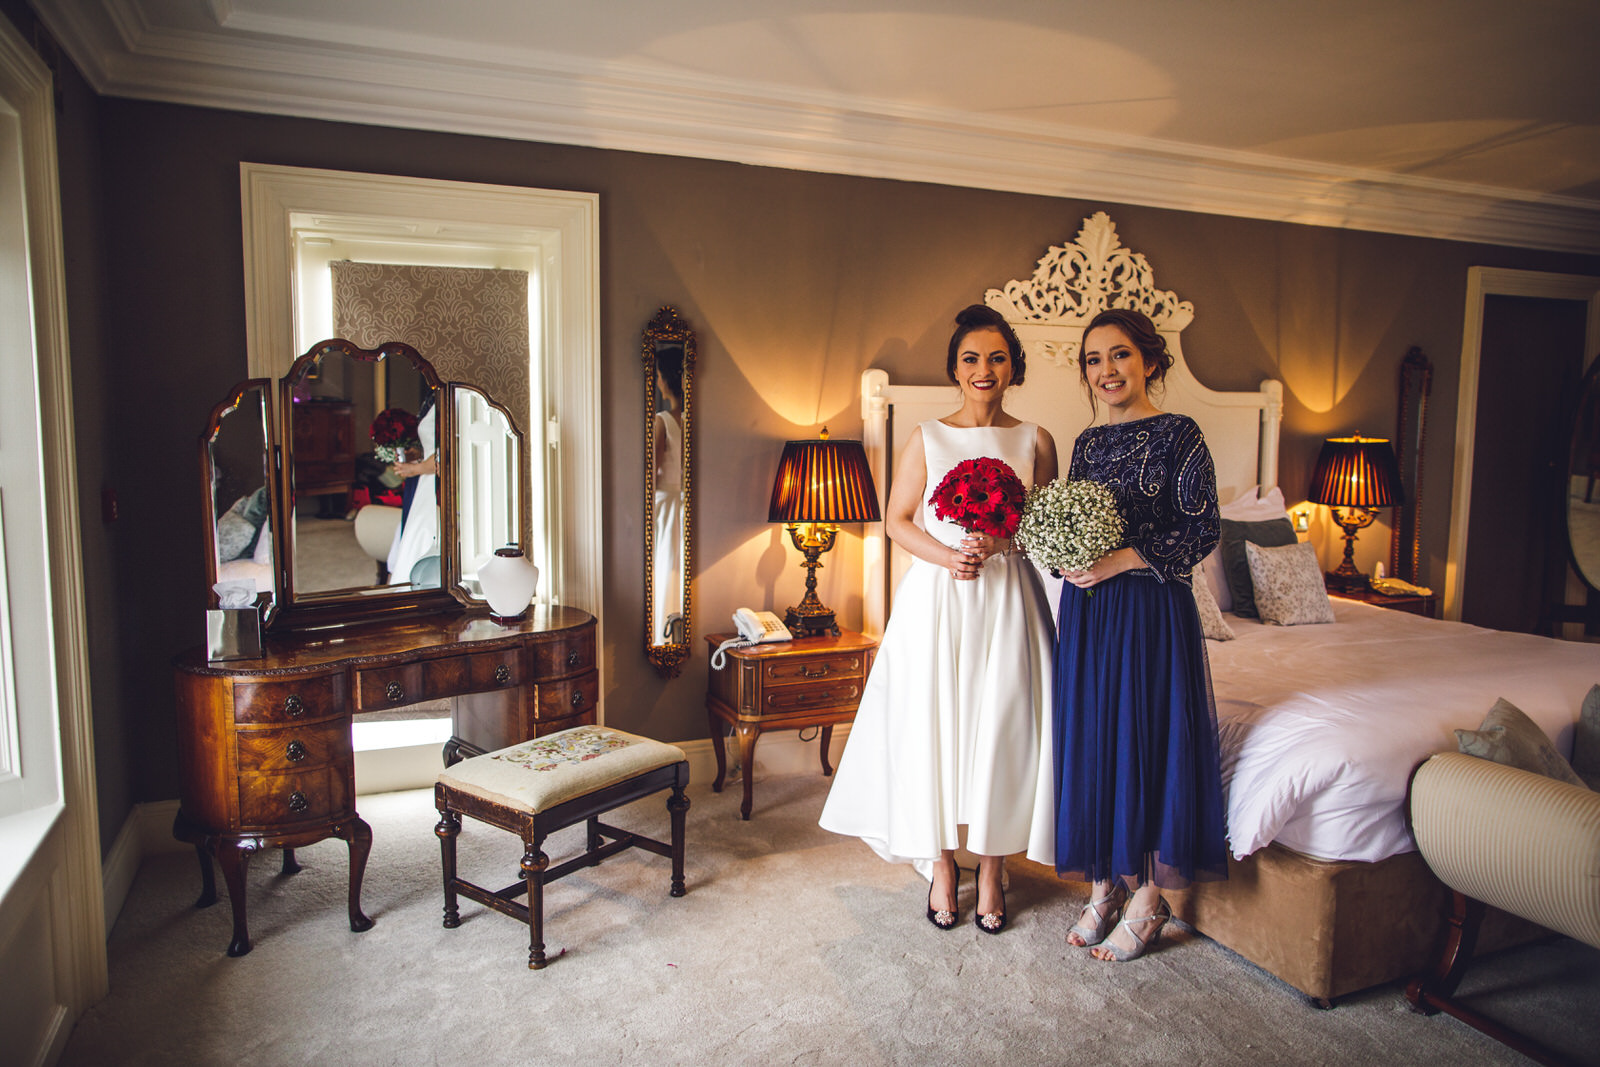 wicklow-wedding-photographer-roger-kenny-portrait-room-clonabreaney-house_035.jpg